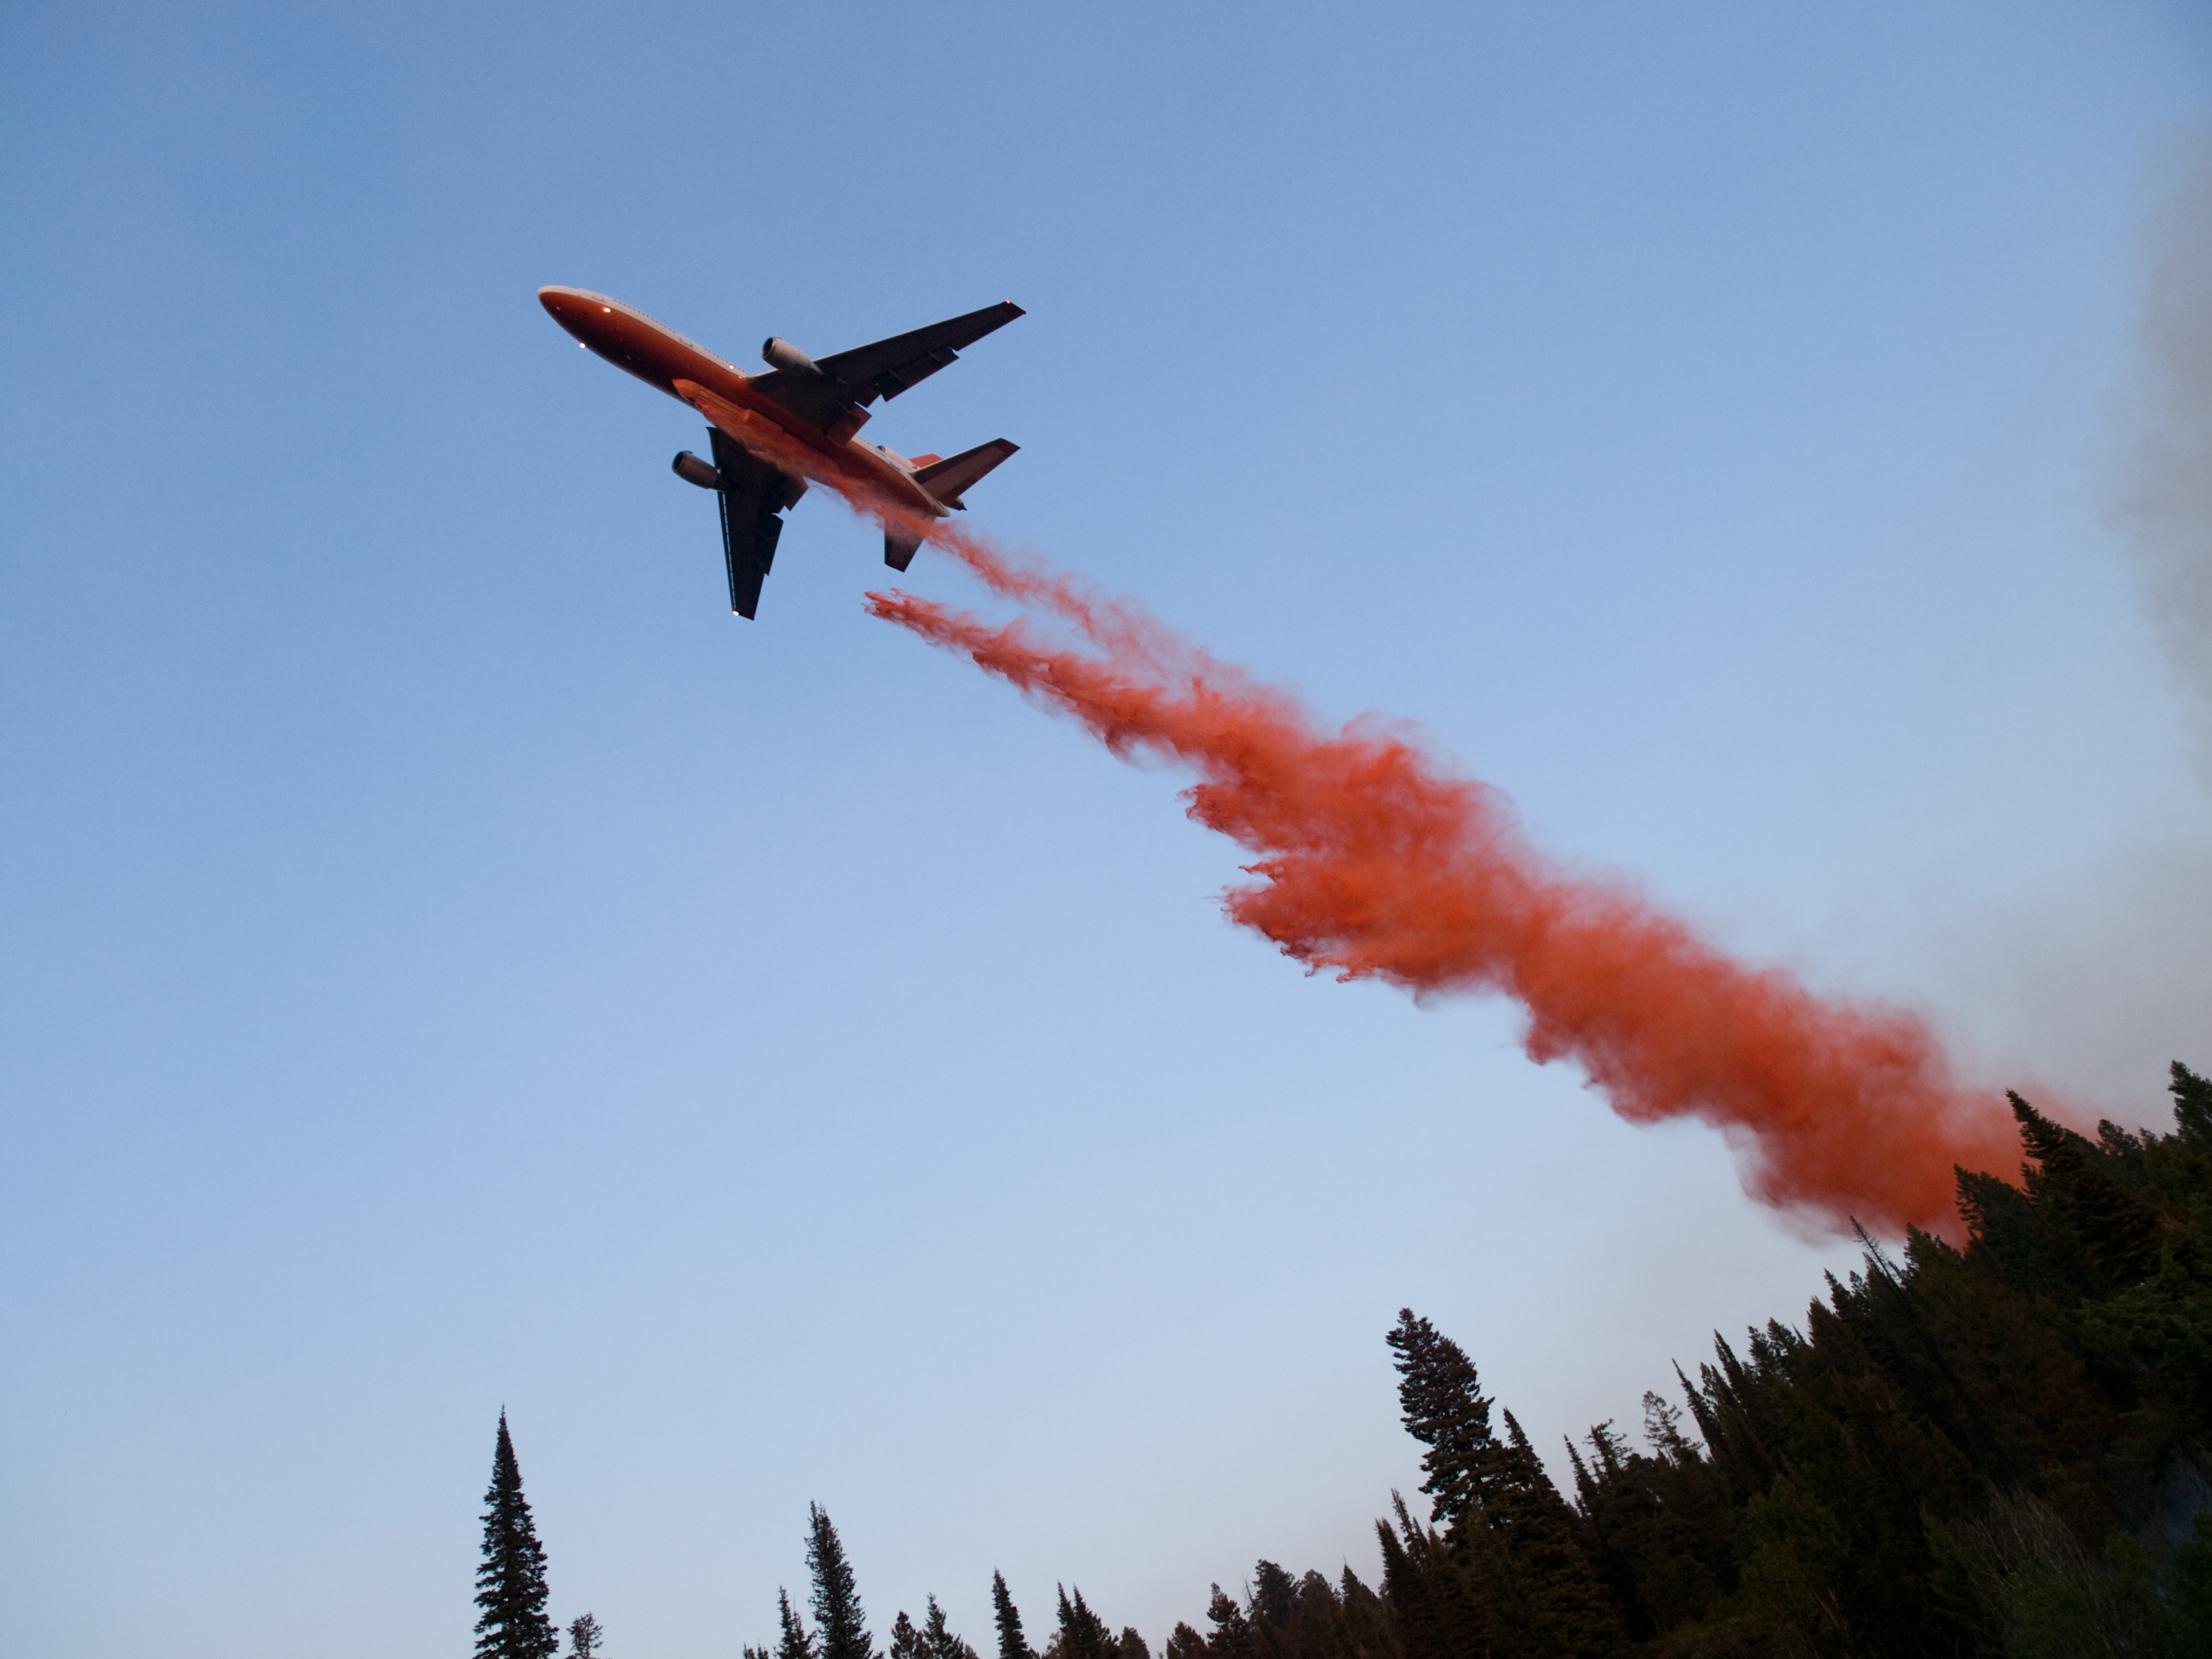 An Airtanker drops fire retardant on a wildfire. (USFS Photo)